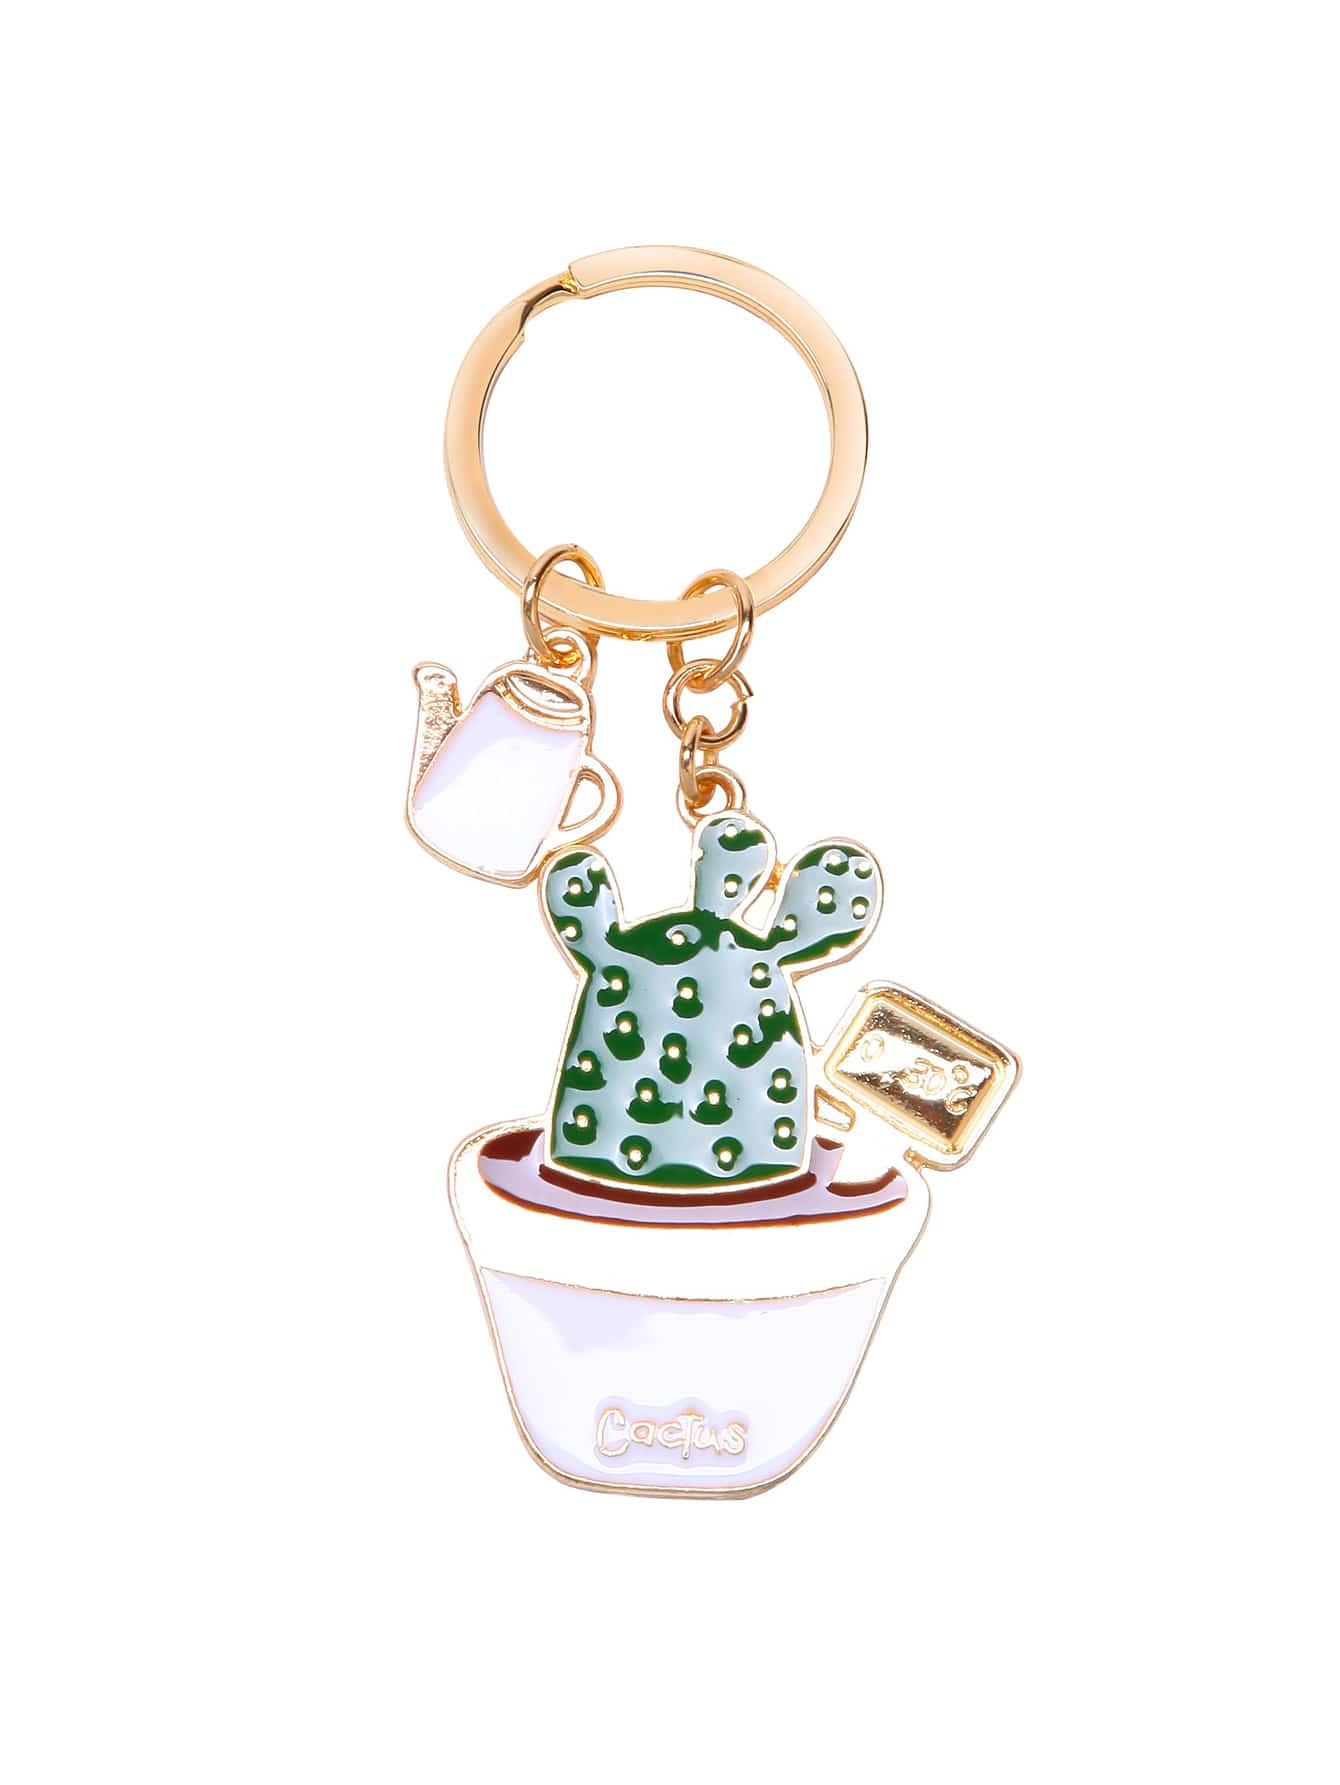 Pot Cactus Shaped Metal KeychainPot Cactus Shaped Metal Keychain<br><br>color: Gold<br>size: None